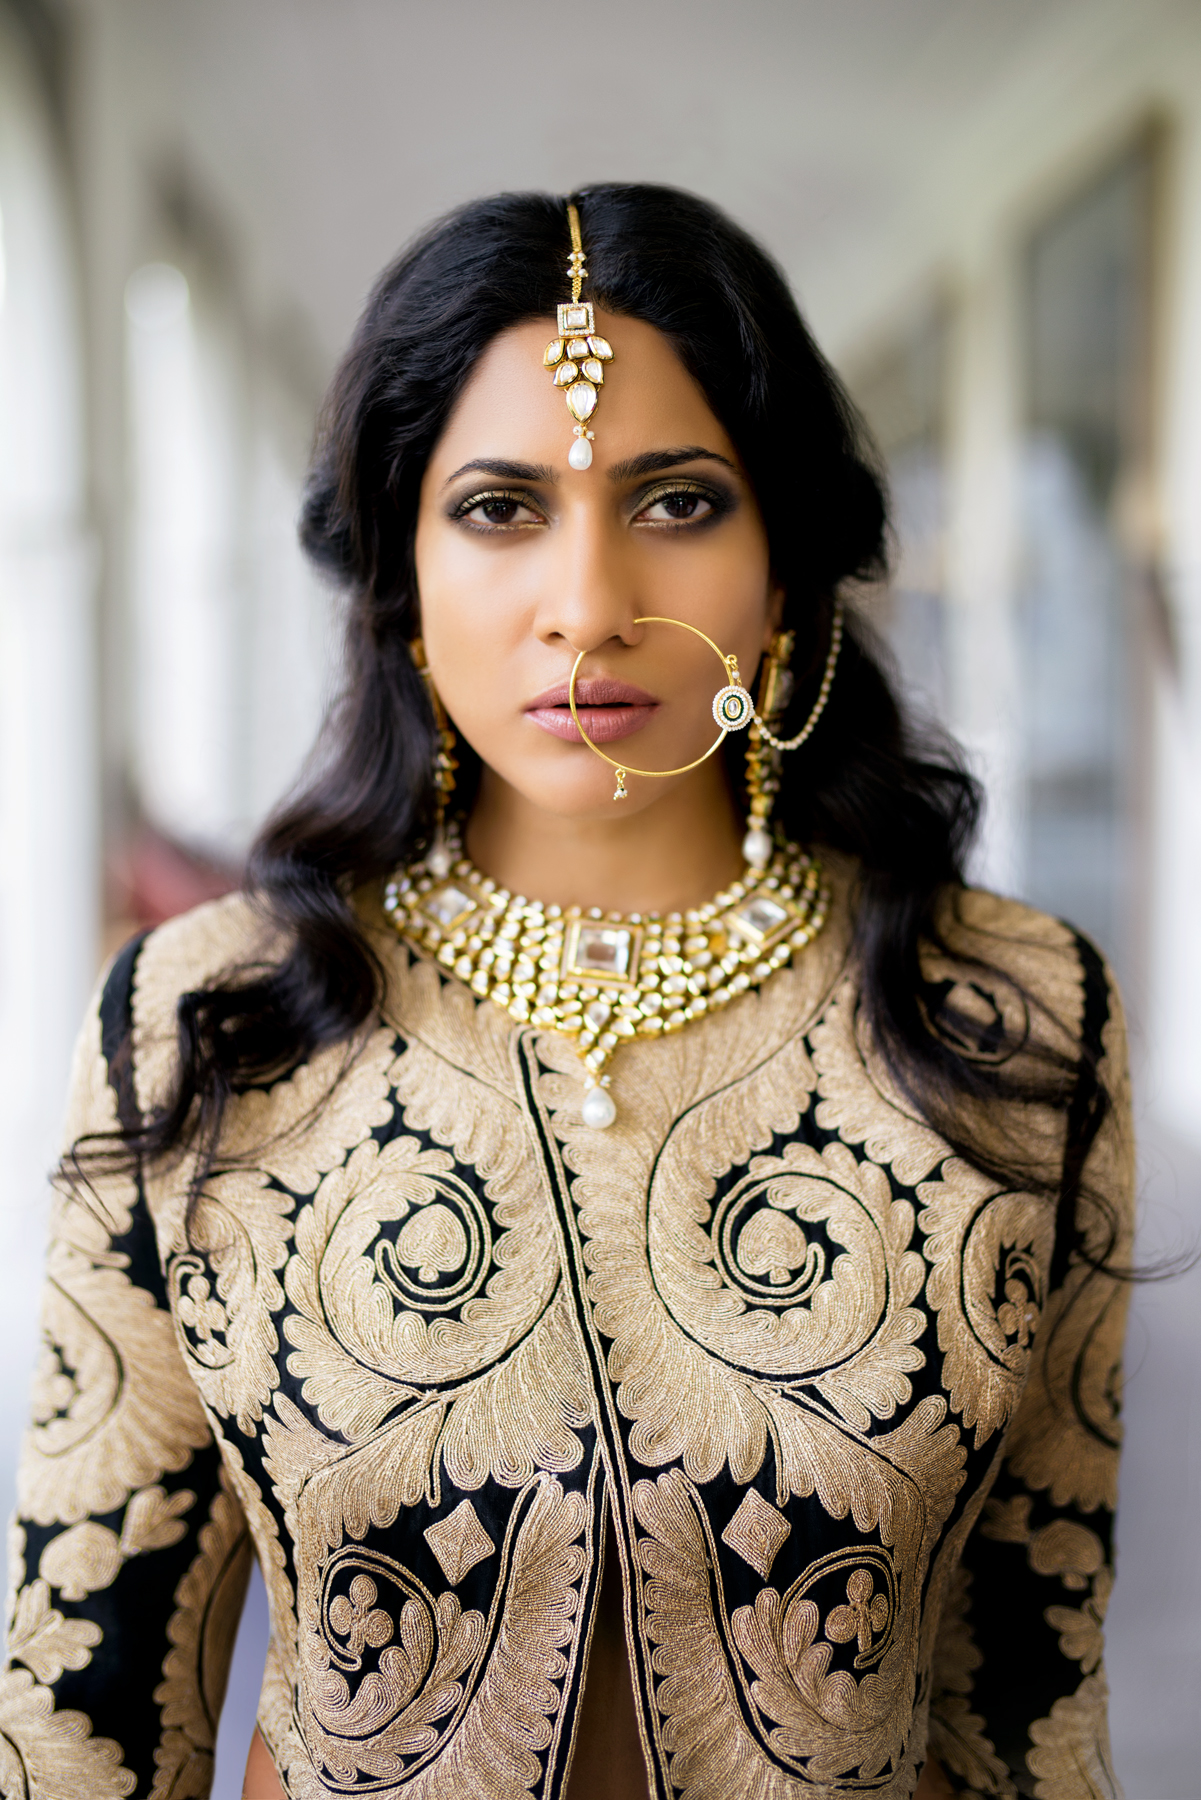 Himarsha Venkatsamy | Klick Fashion Magazine